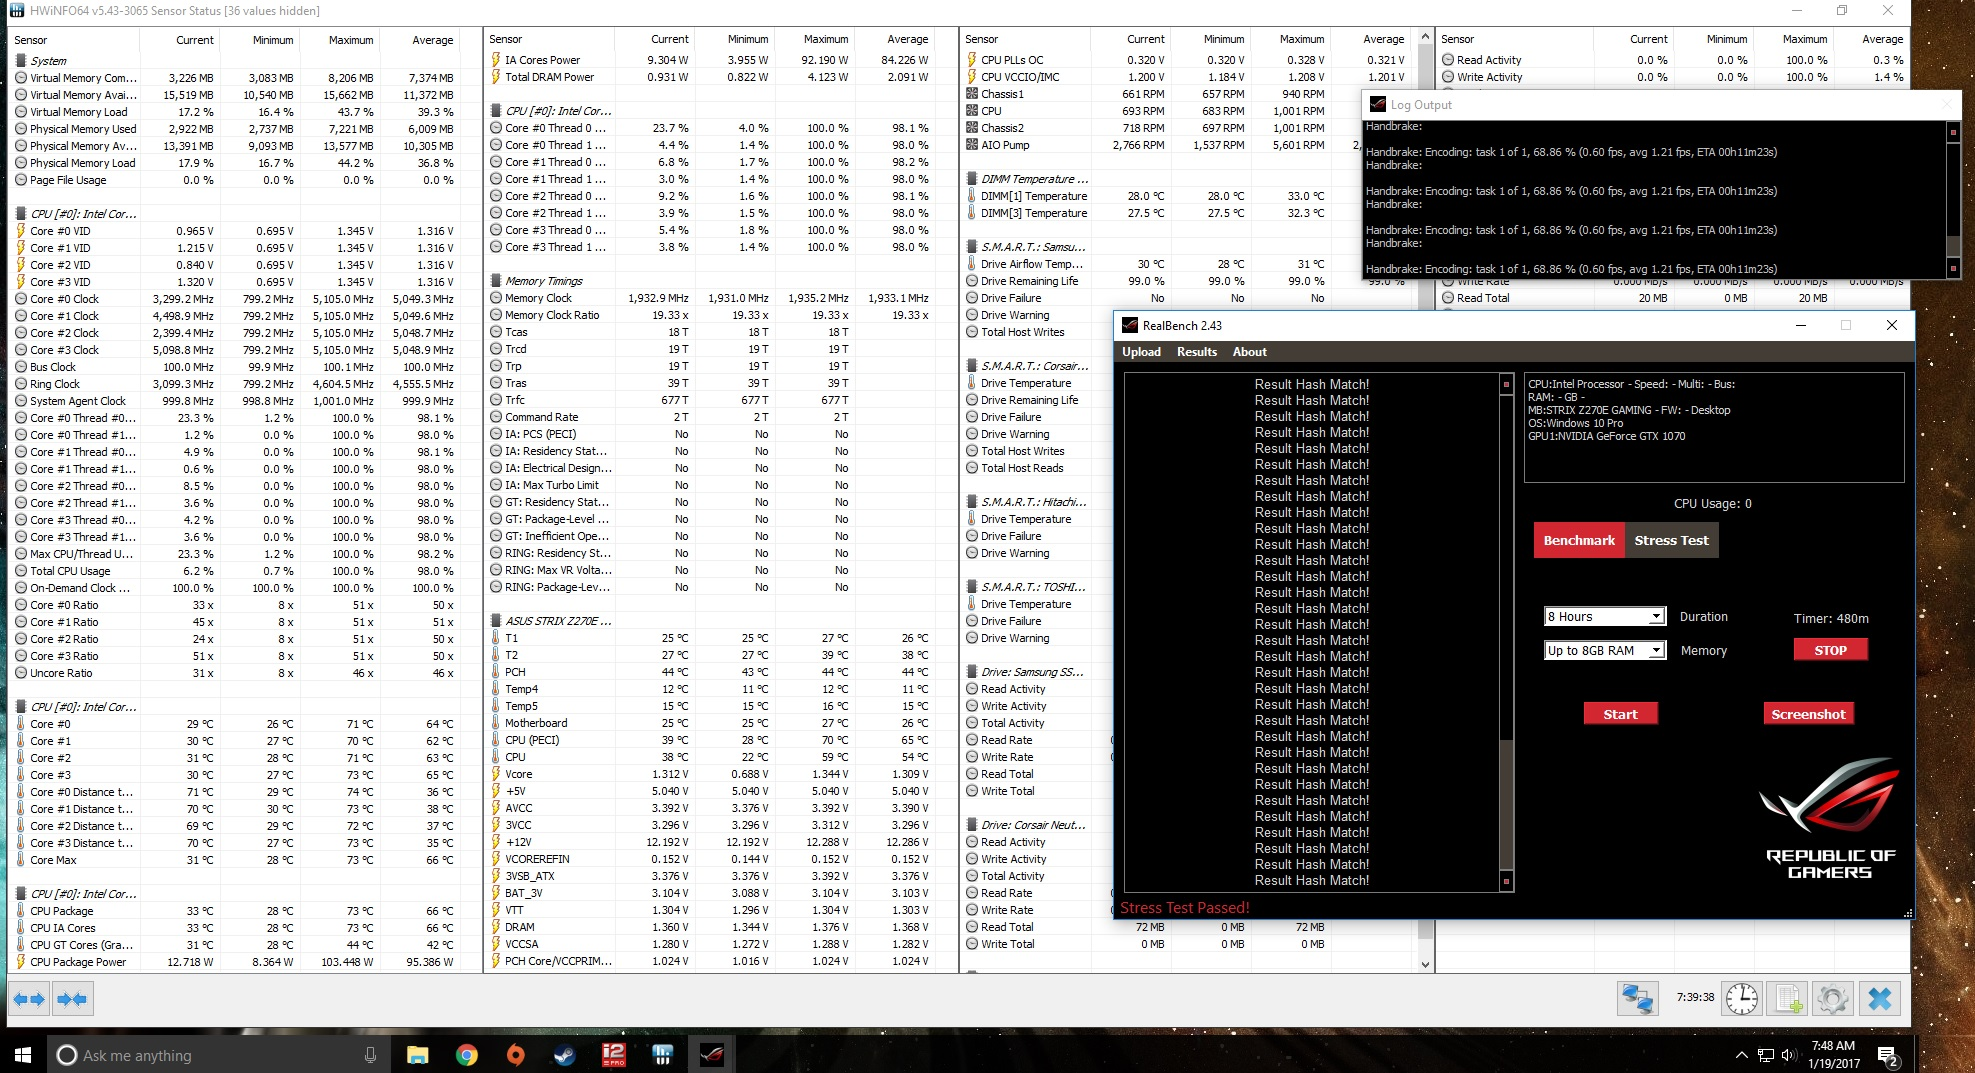 Kaby Lake Overclocking Guide [With Statistics] - Overclock